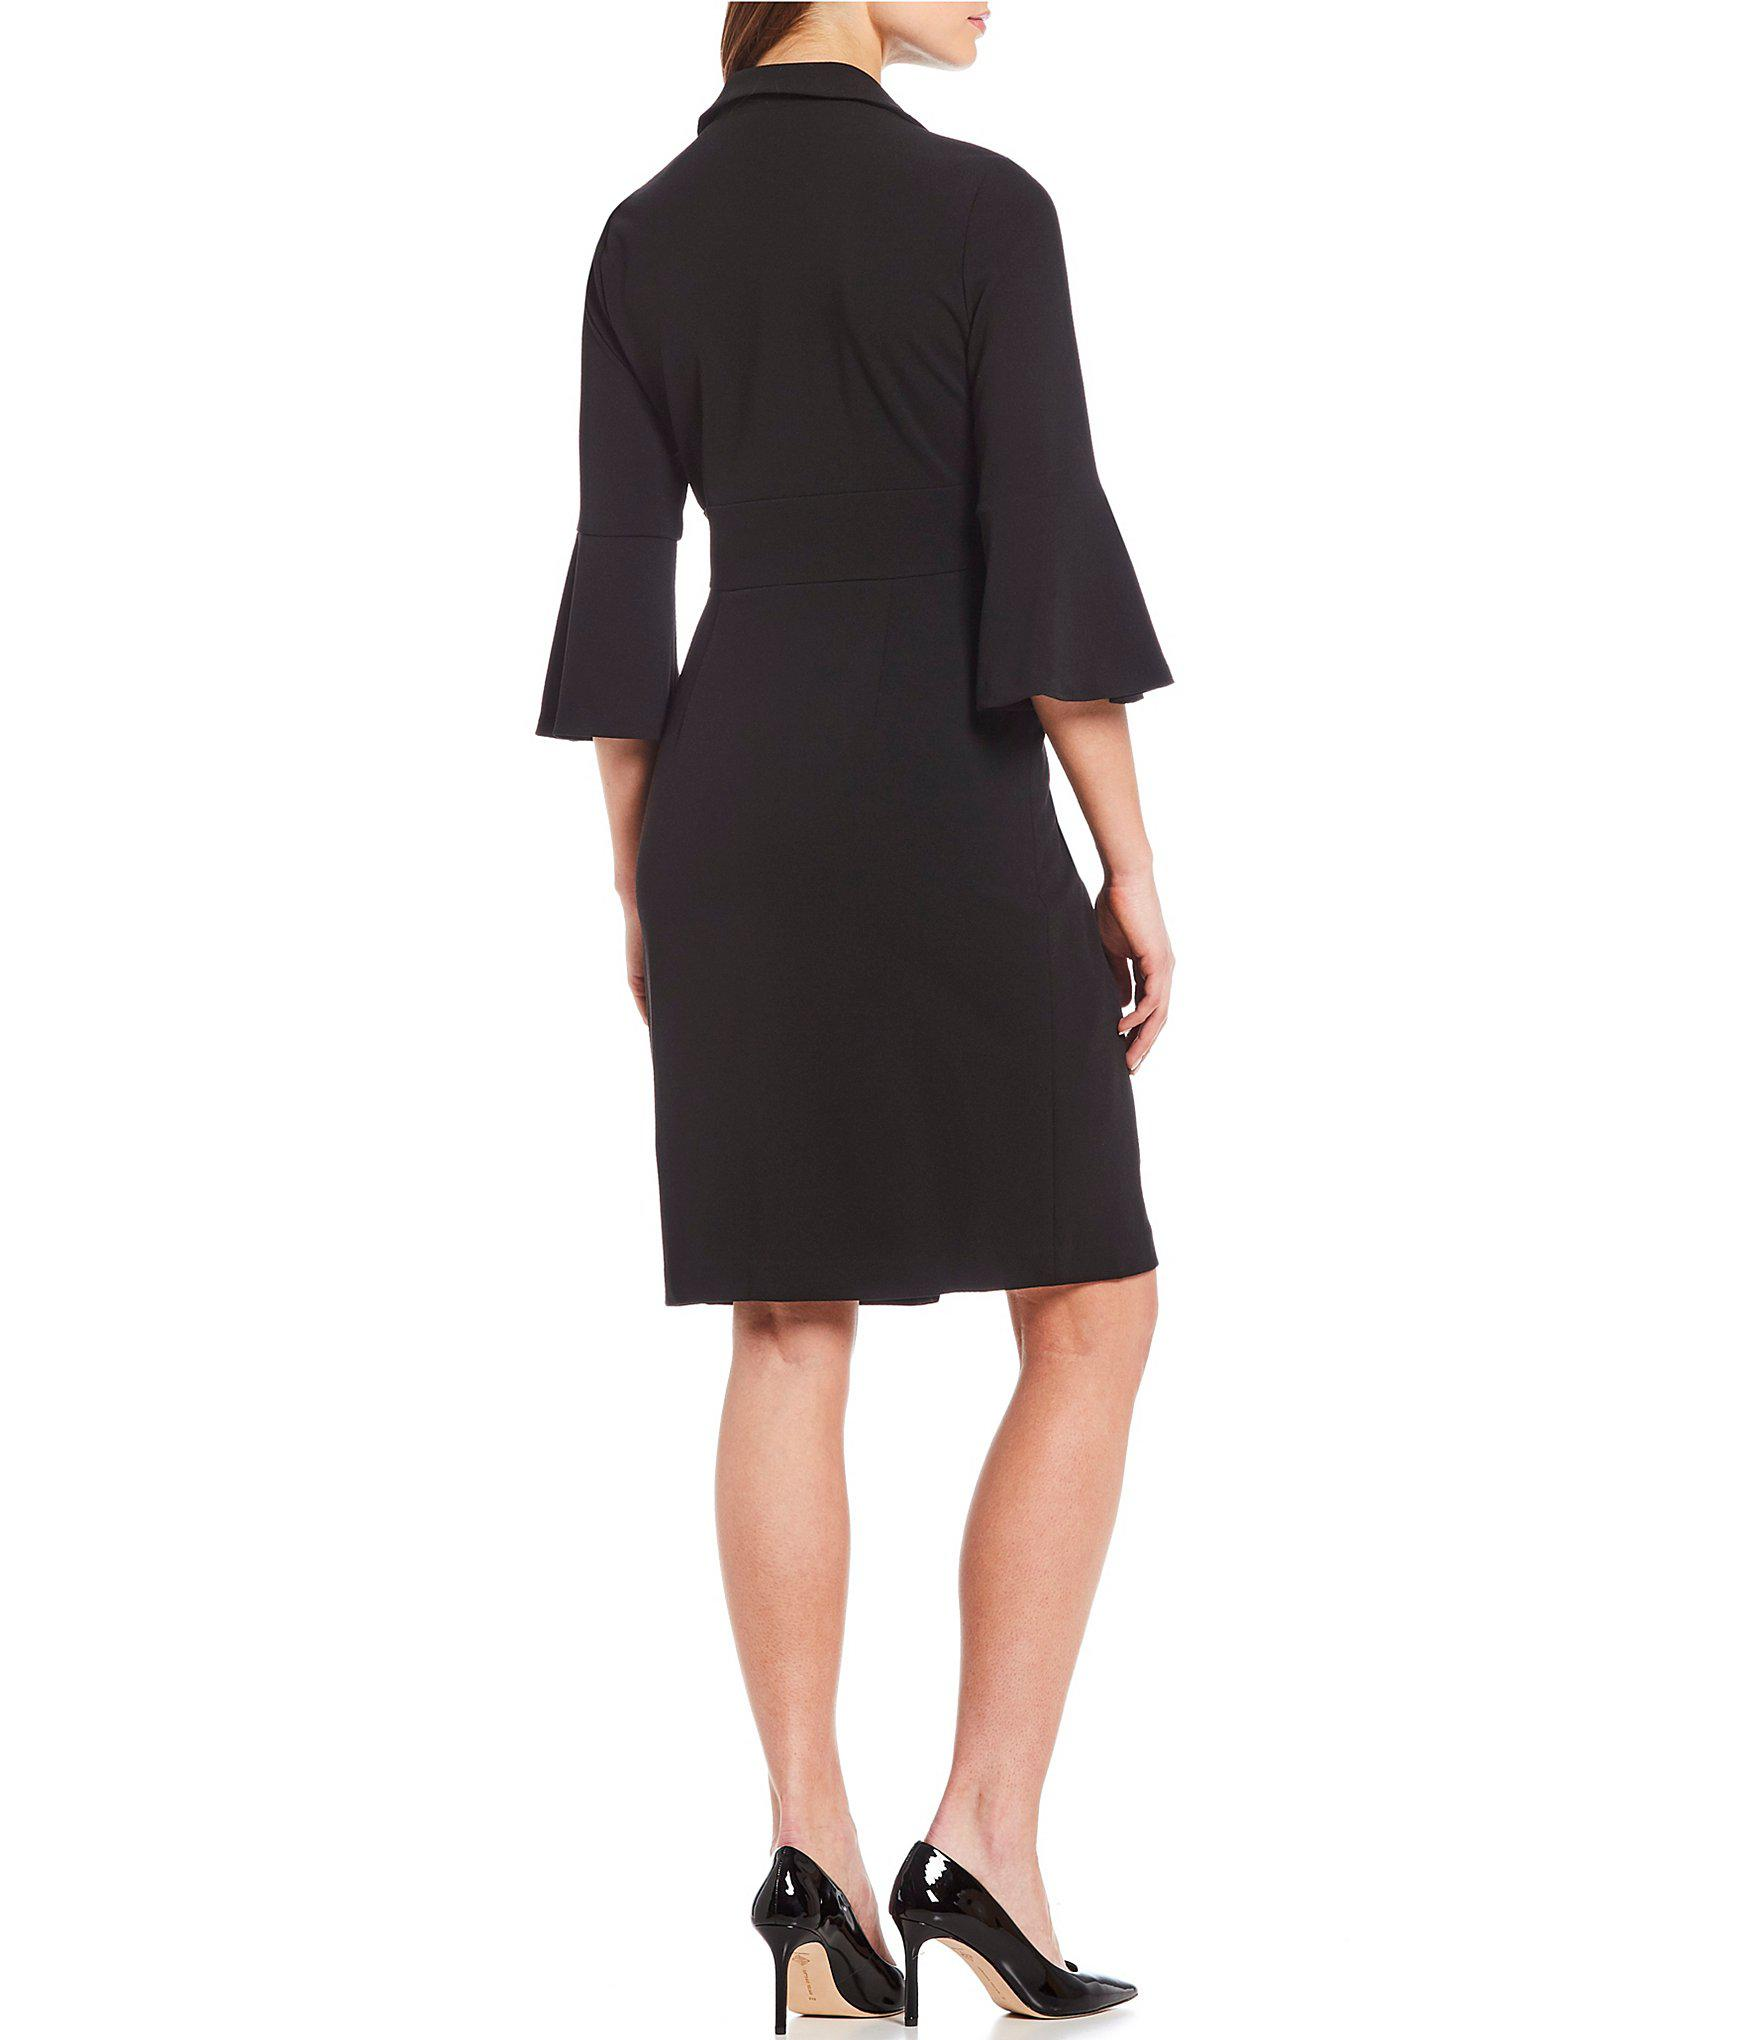 b8d022d89c5 Lyst - Ivanka Trump Bell Sleeve Collared Wrap Dress in Black